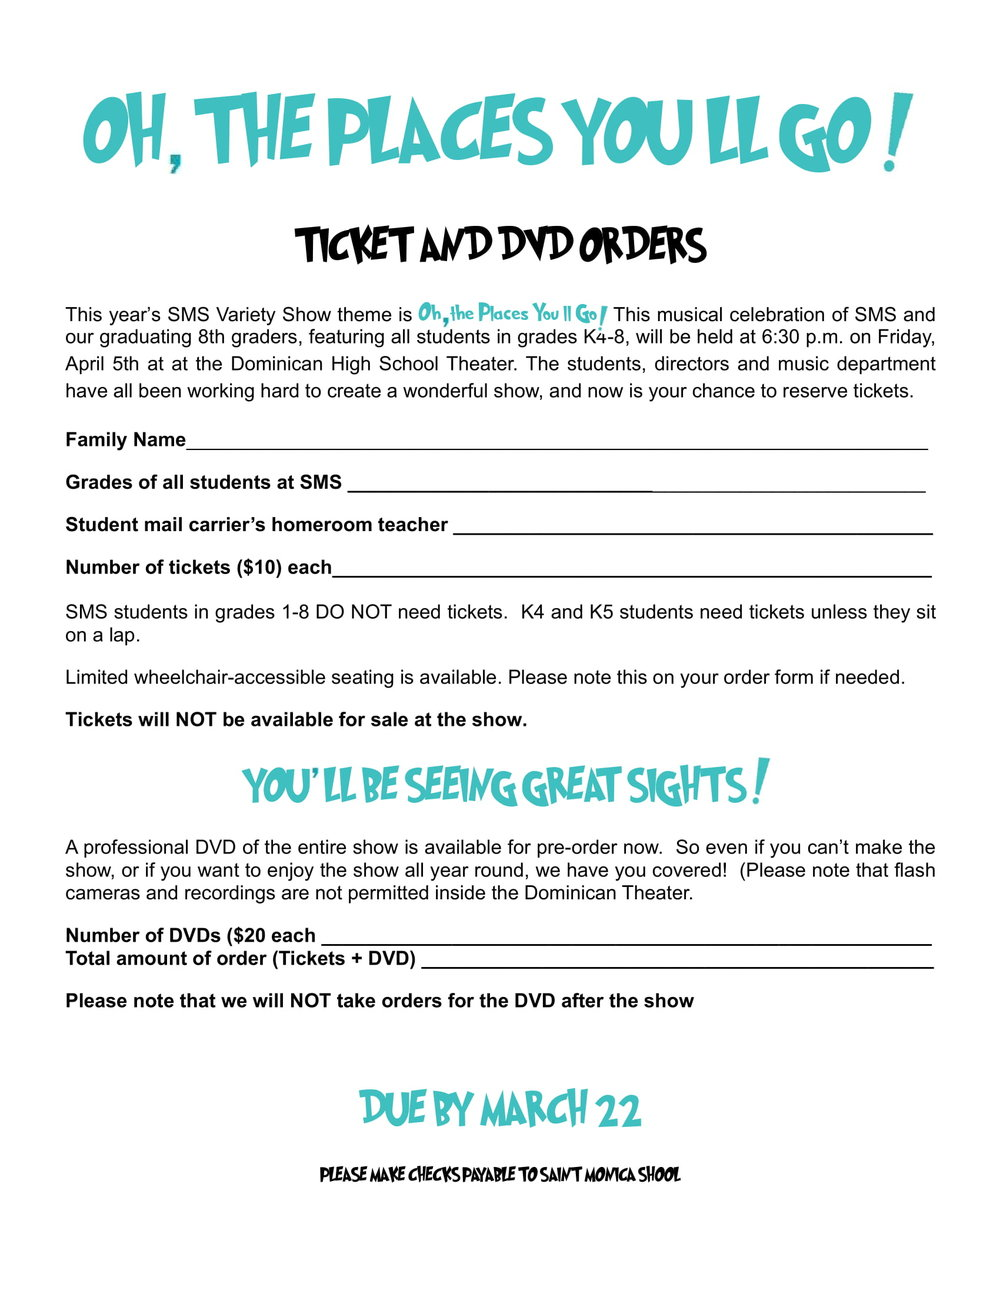 2019VARIETY SHOW TICKETS AND DVD ORDER FORM (003) (002)(2)-1.jpg